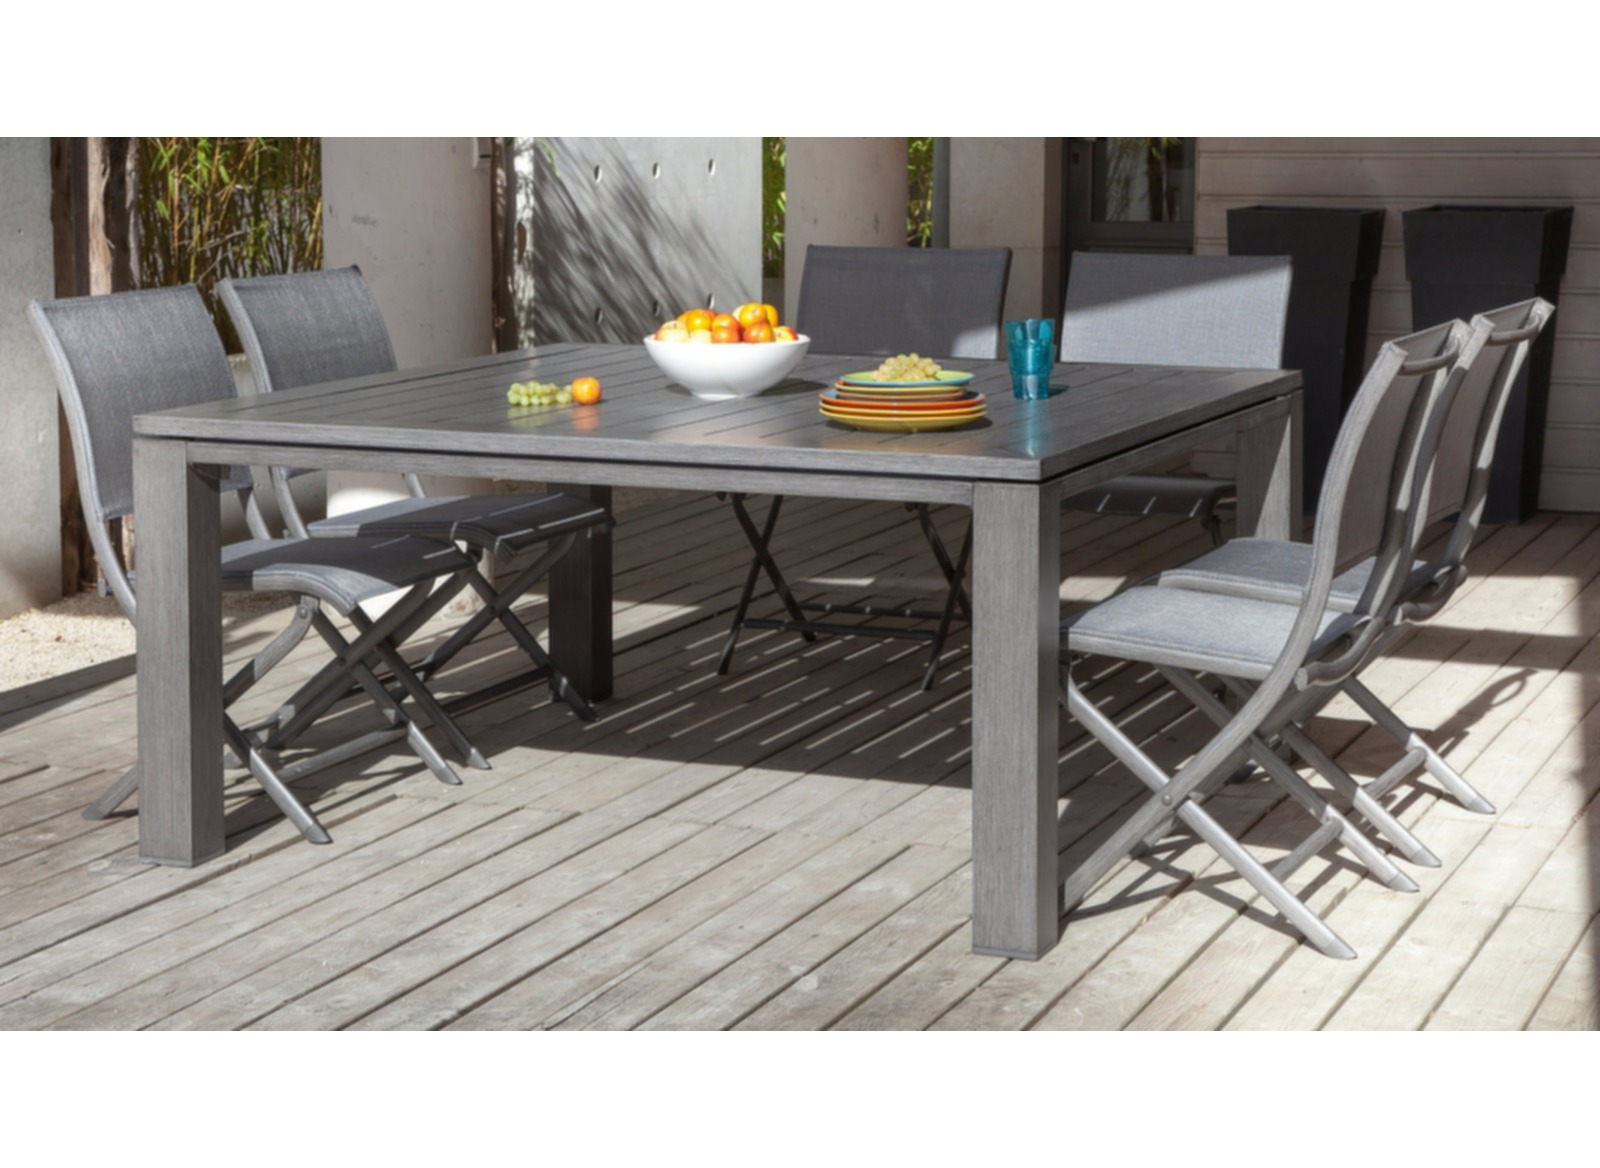 Table salon de jardin carr e 155cm latino oc o for Table carree et chaises